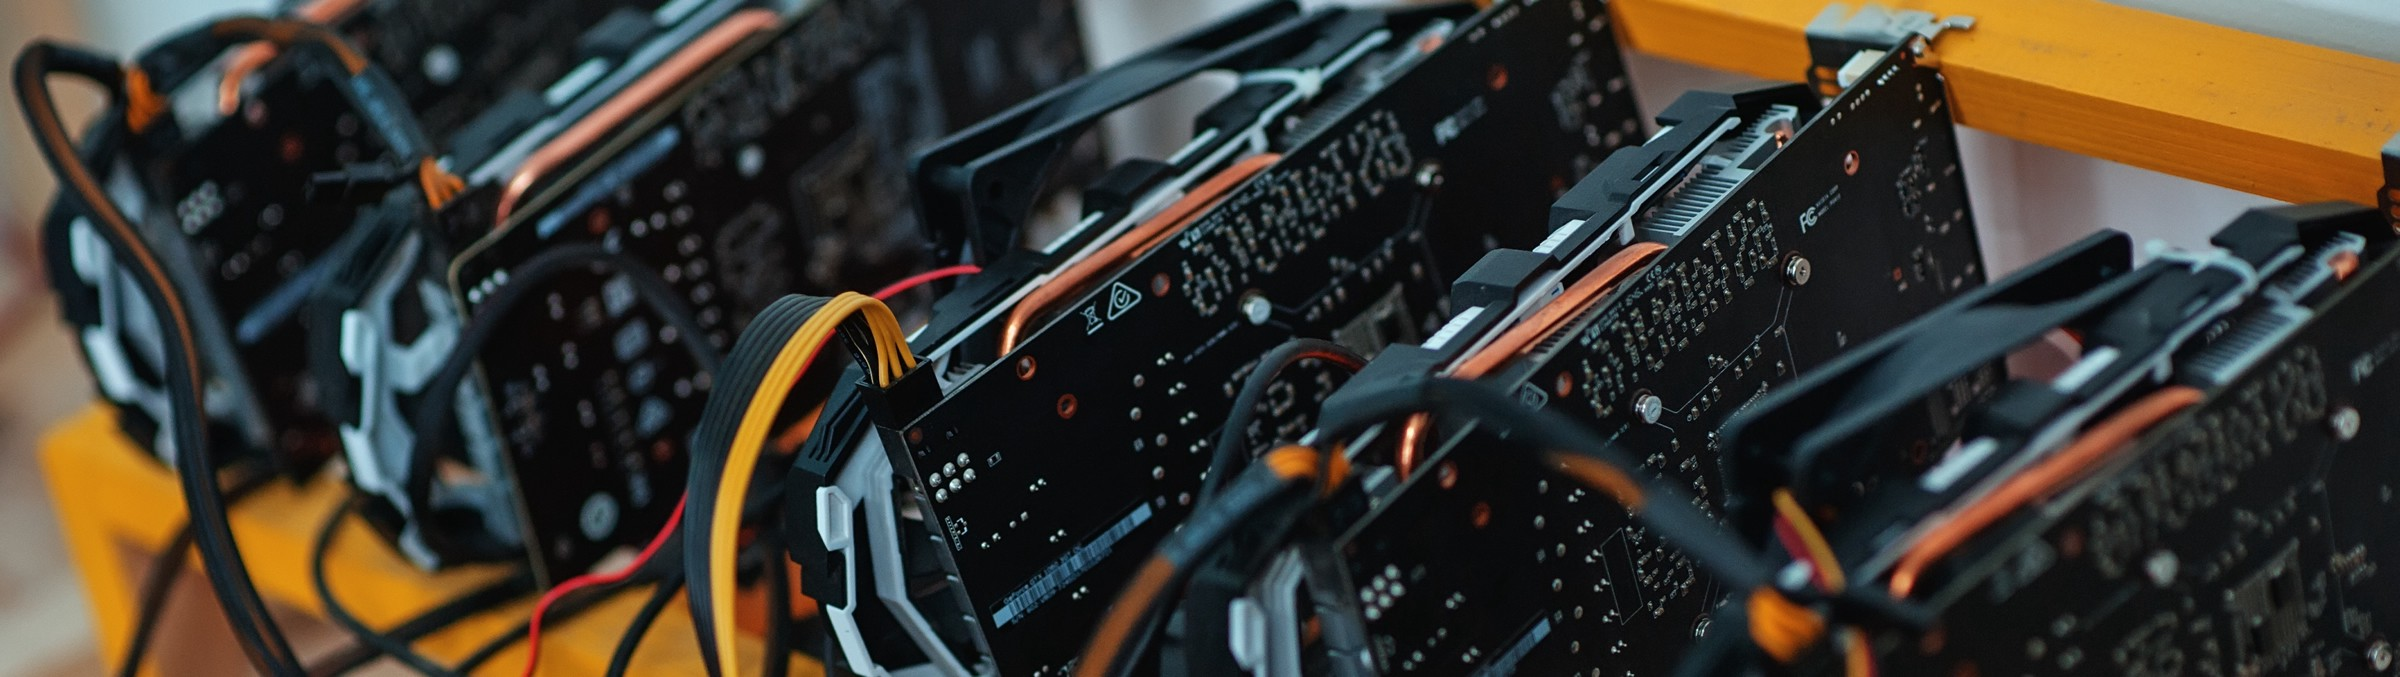 Pressure Mounts for Ethereum Developers as ASIC Miners Eagerly Await